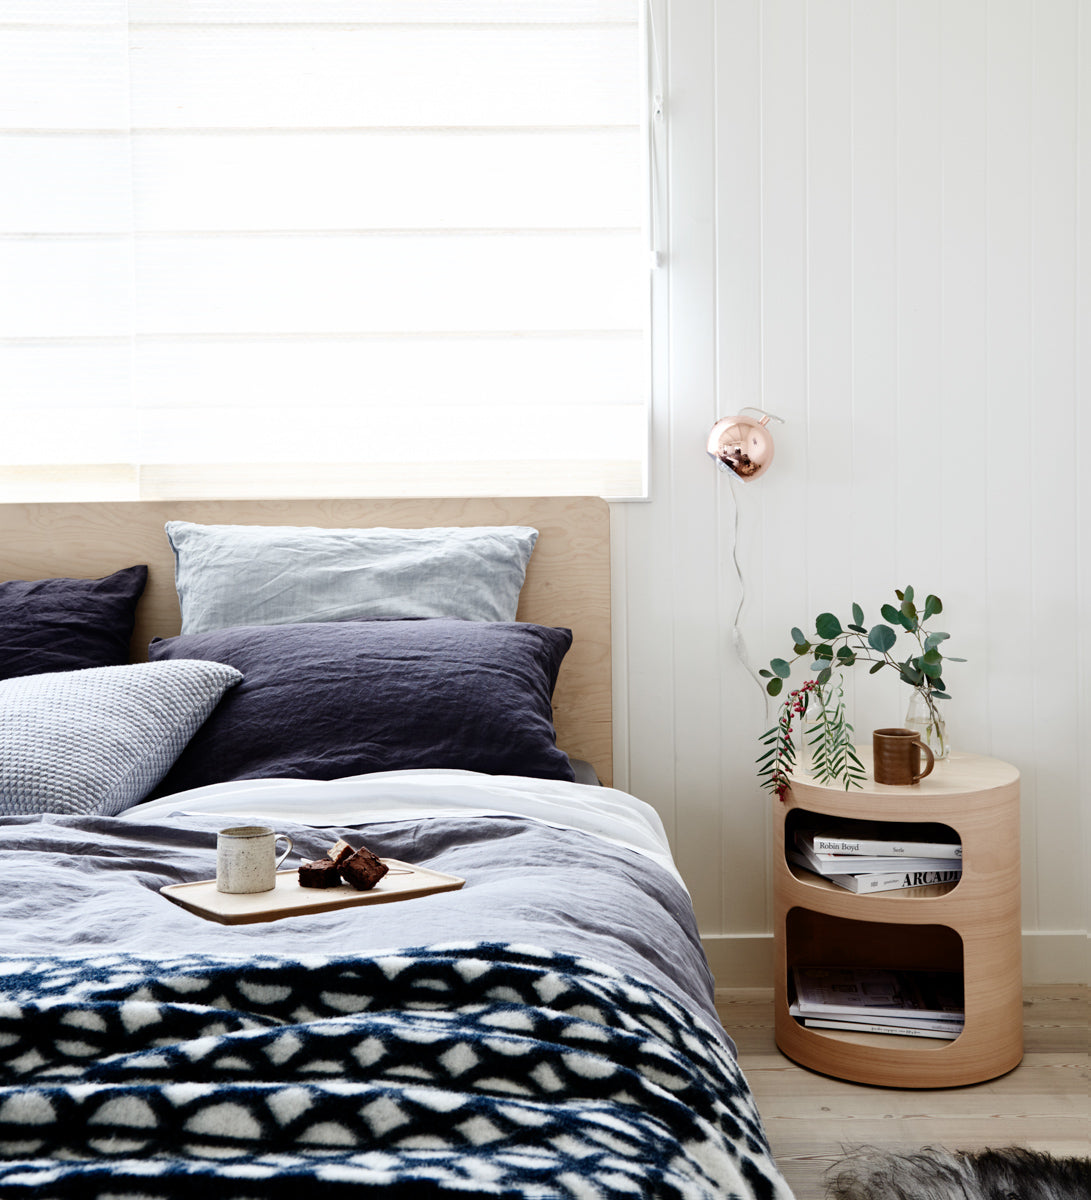 Gifts for the organised home with Plyroom's minimalist furniture design and modern bedroom storage